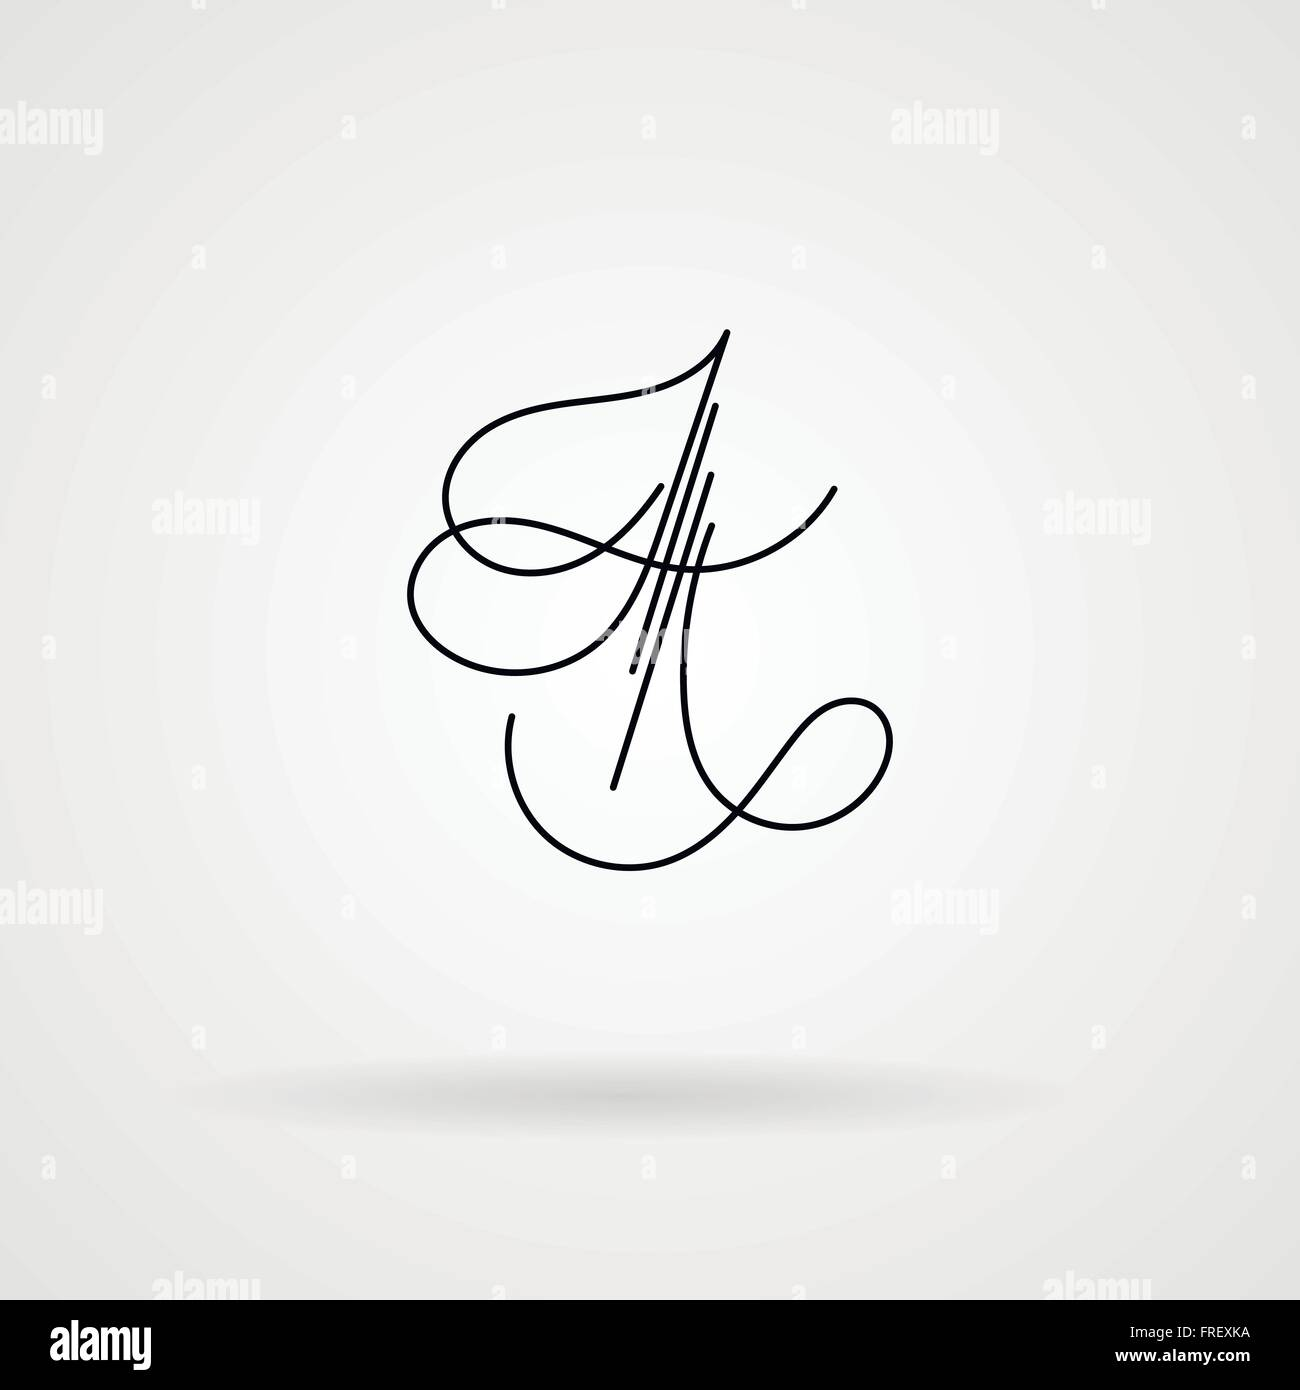 Signature For A Letter from c8.alamy.com